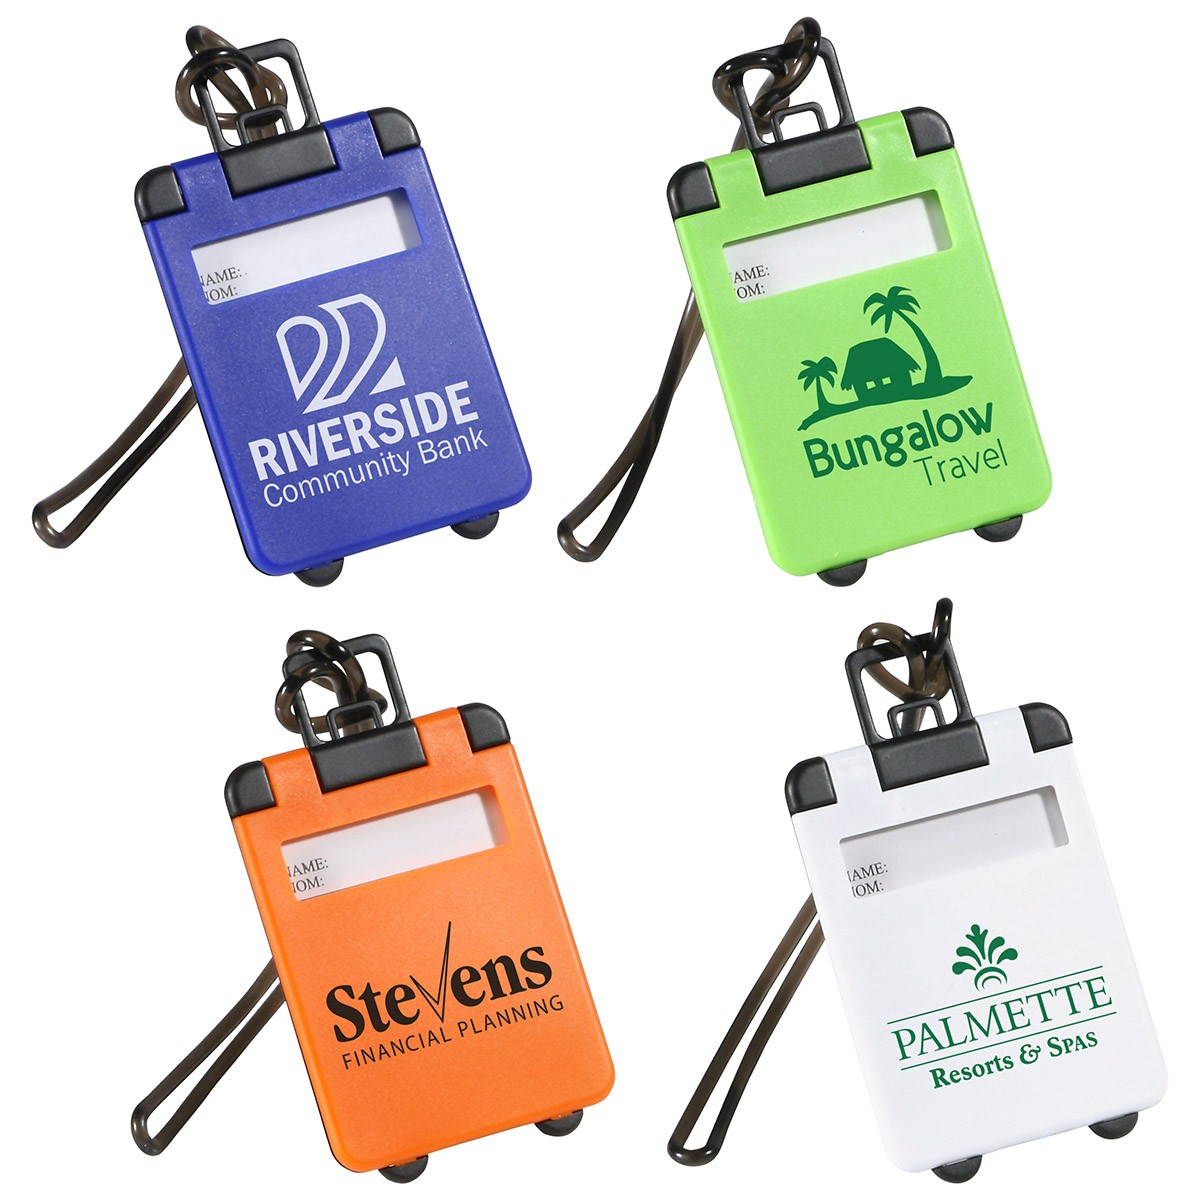 Promotional Travel Items Agency Giveaways Luggage Tag Hk Love Pink Golf Bag Tags Full Color Suitcase Shape